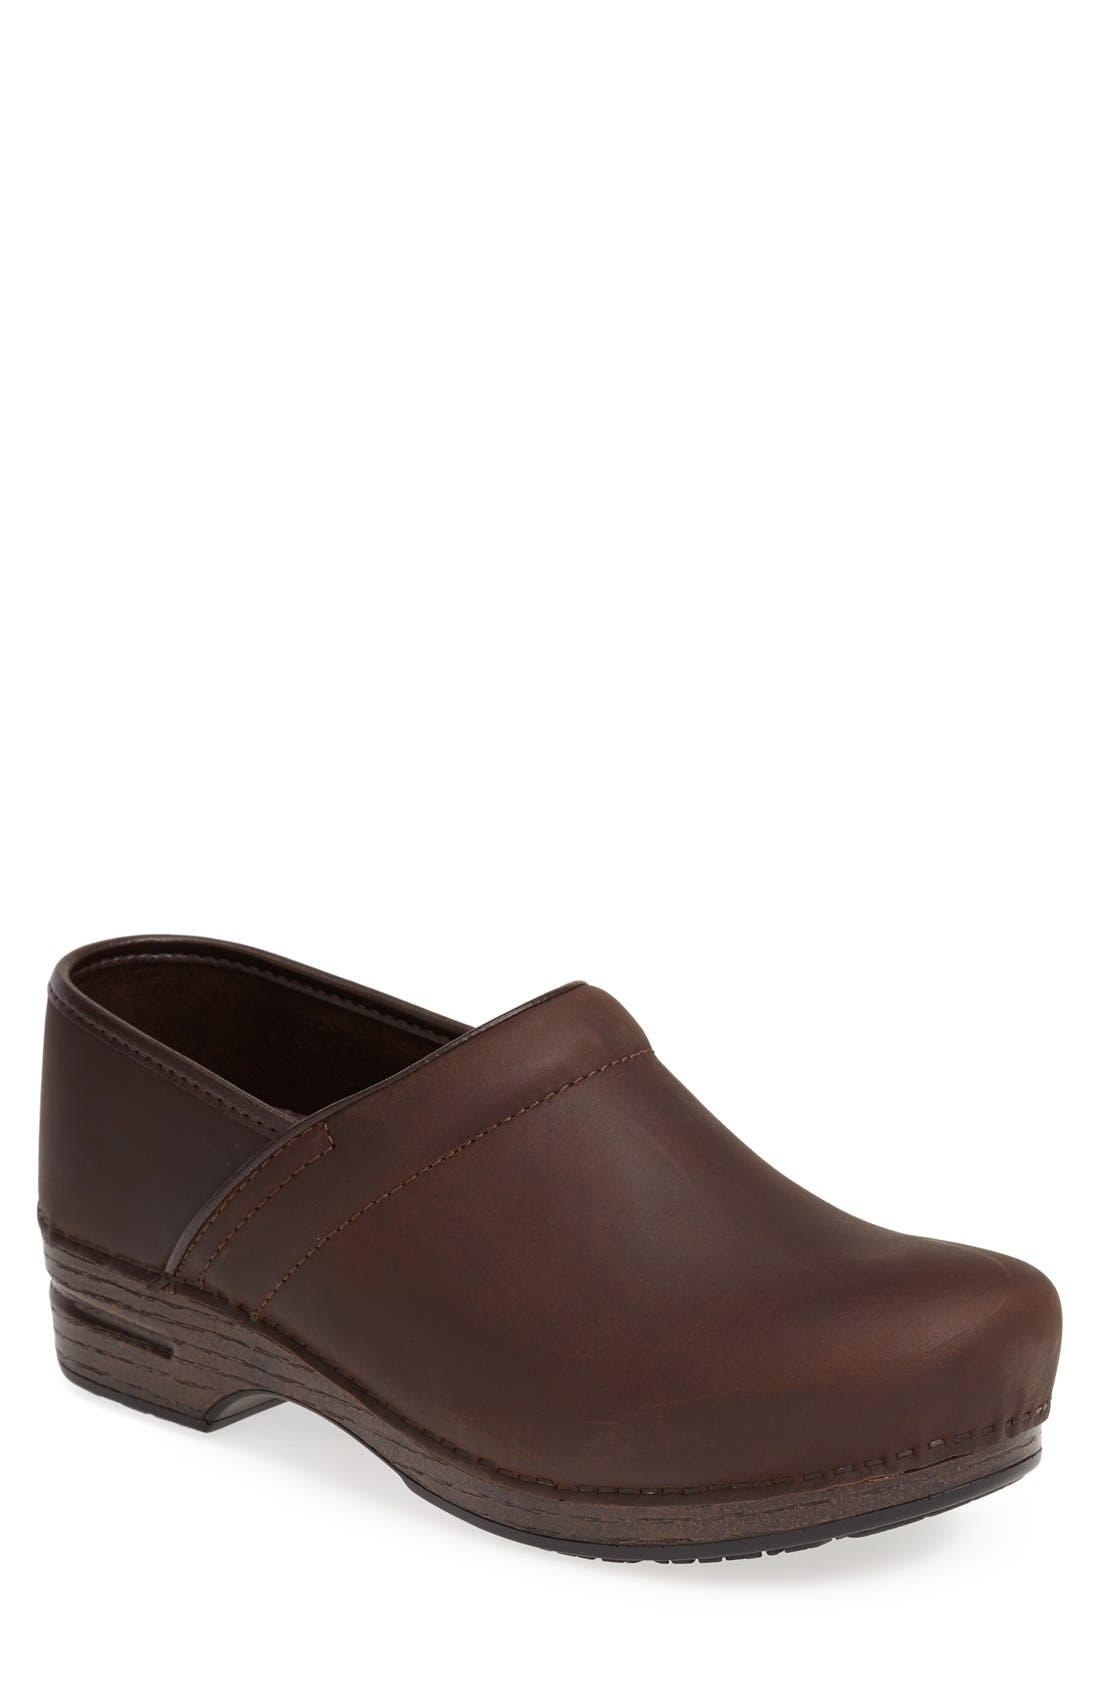 'Pro XP' Slip-On,                             Main thumbnail 1, color,                             Brown Oiled